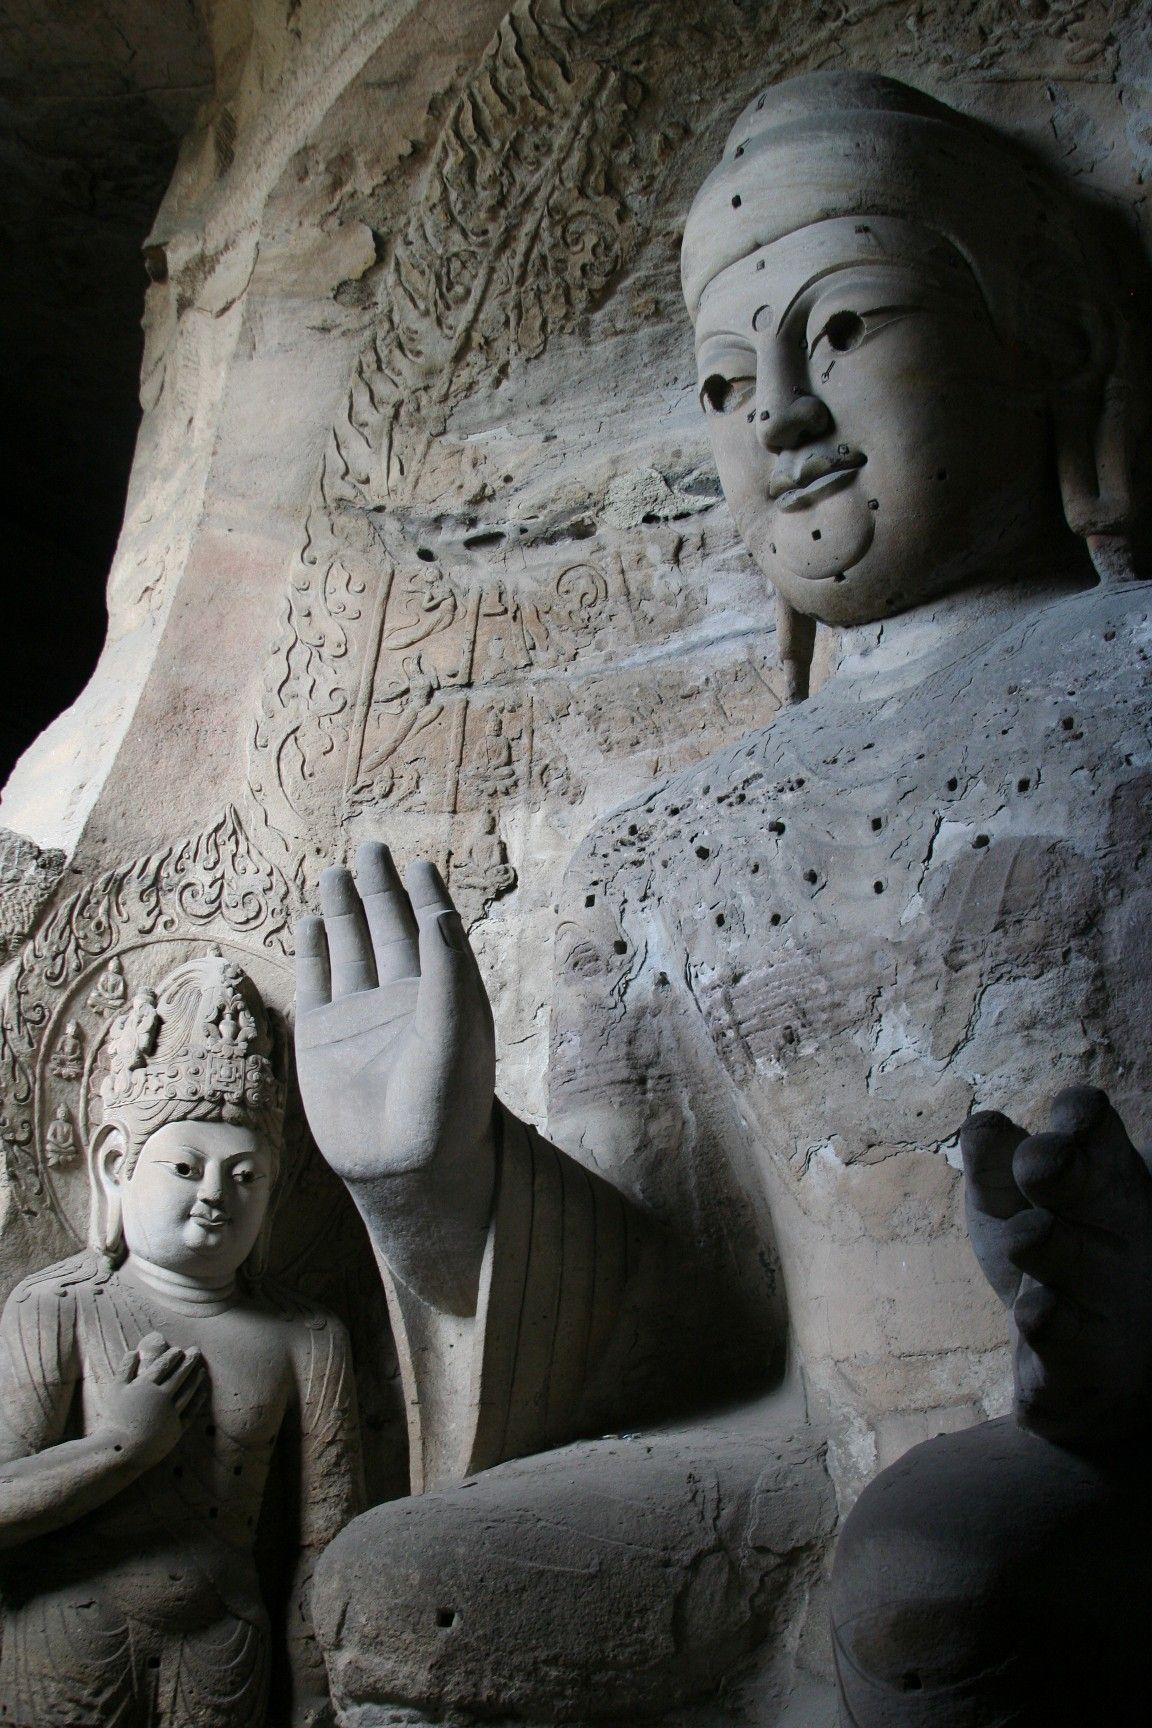 Maitreya (left) in the Yungang Grottoes, Cave 3 (471 – 494 CE). The wooden statue (right) outside the cave was added in the Qing dynasty (1644 – 1912).